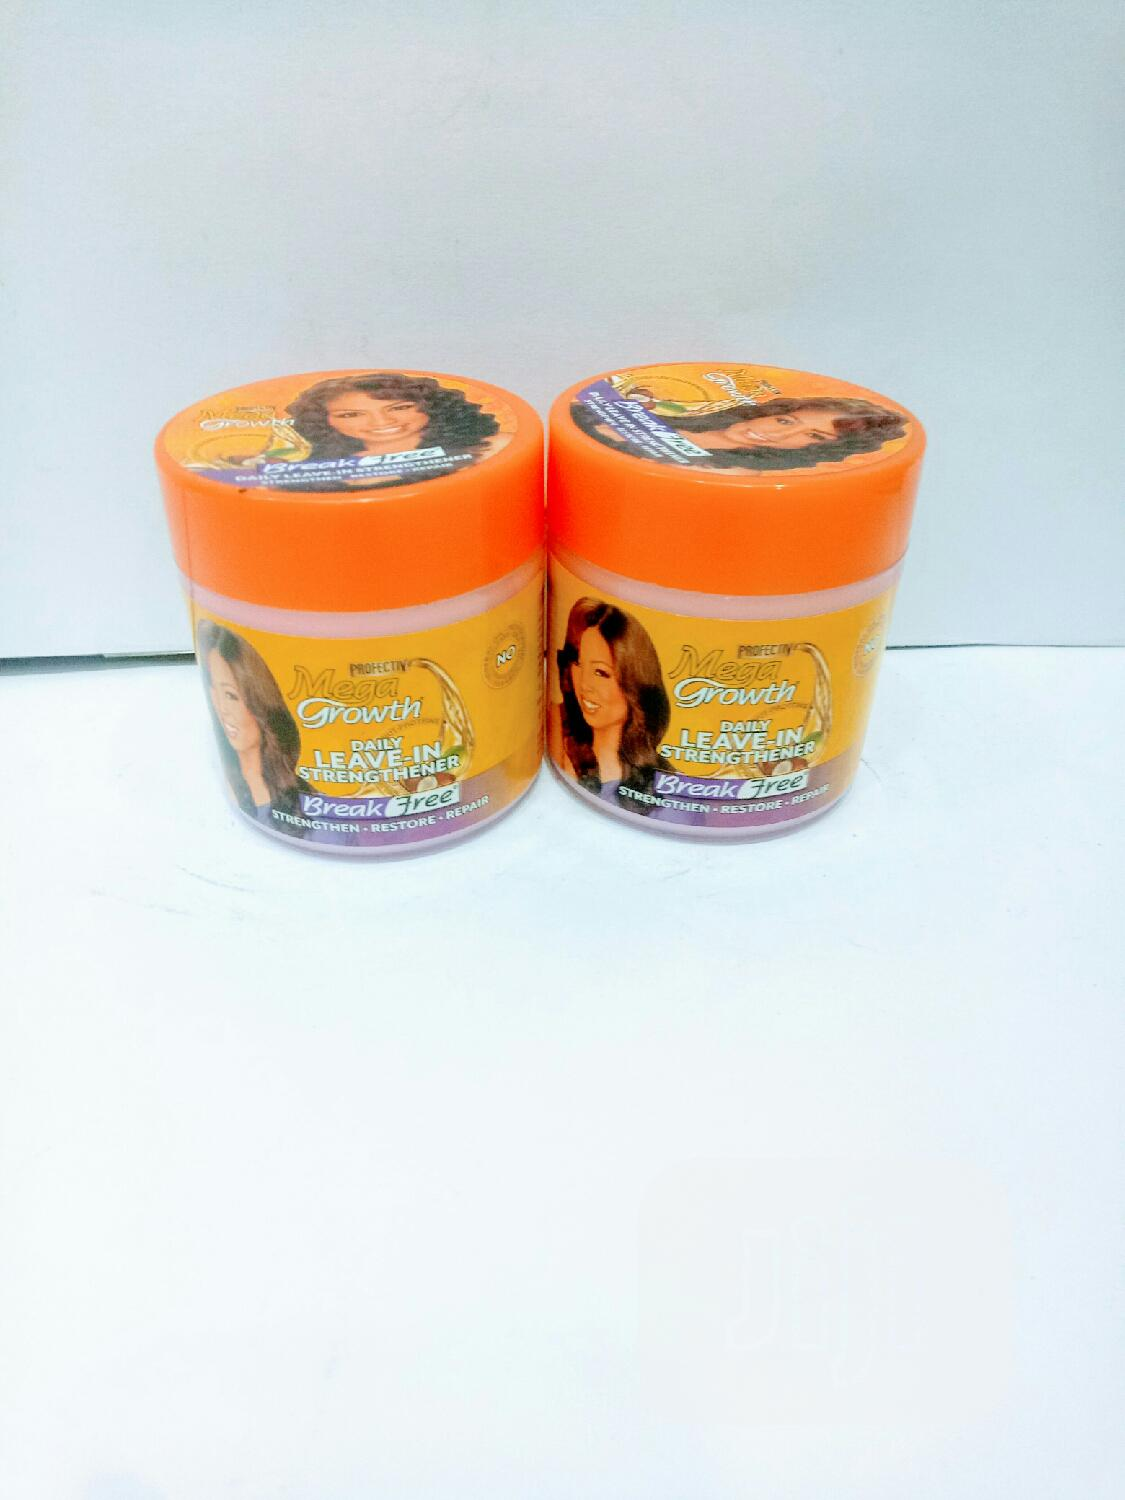 Mega Growth Leave In Conditioner